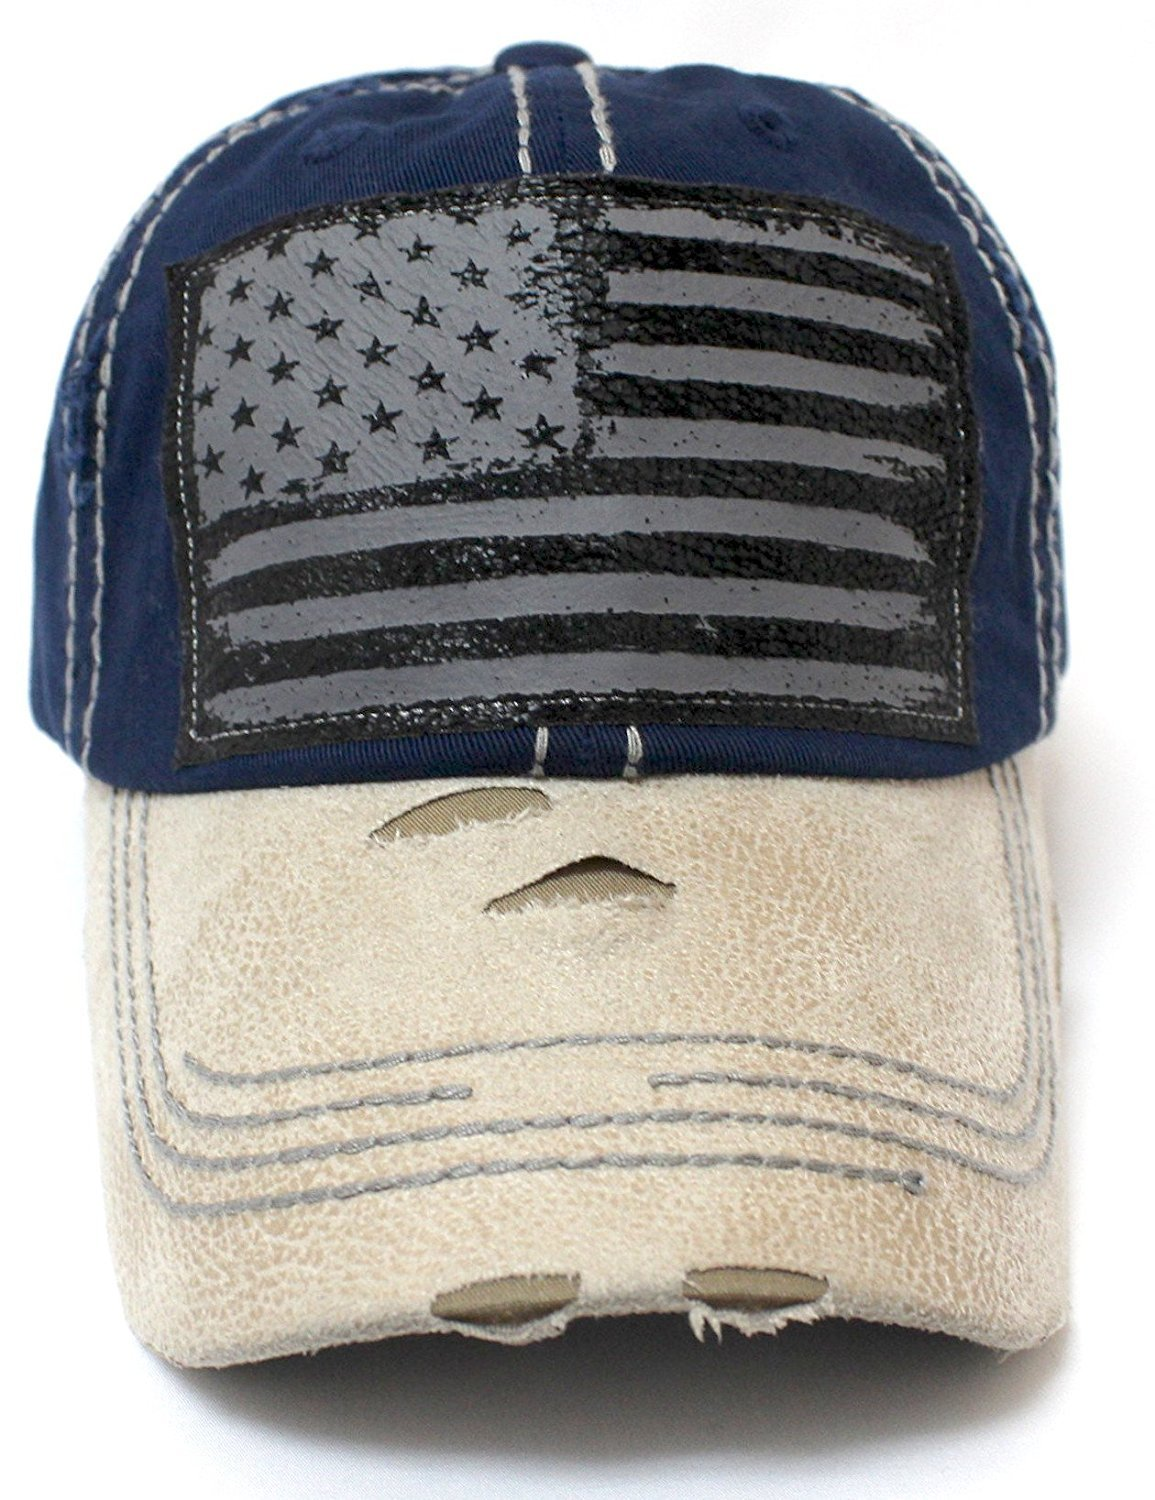 New!! Navy/Crème Suede Bill American Flag Vintage Baseball Hat - Caps 'N Vintage